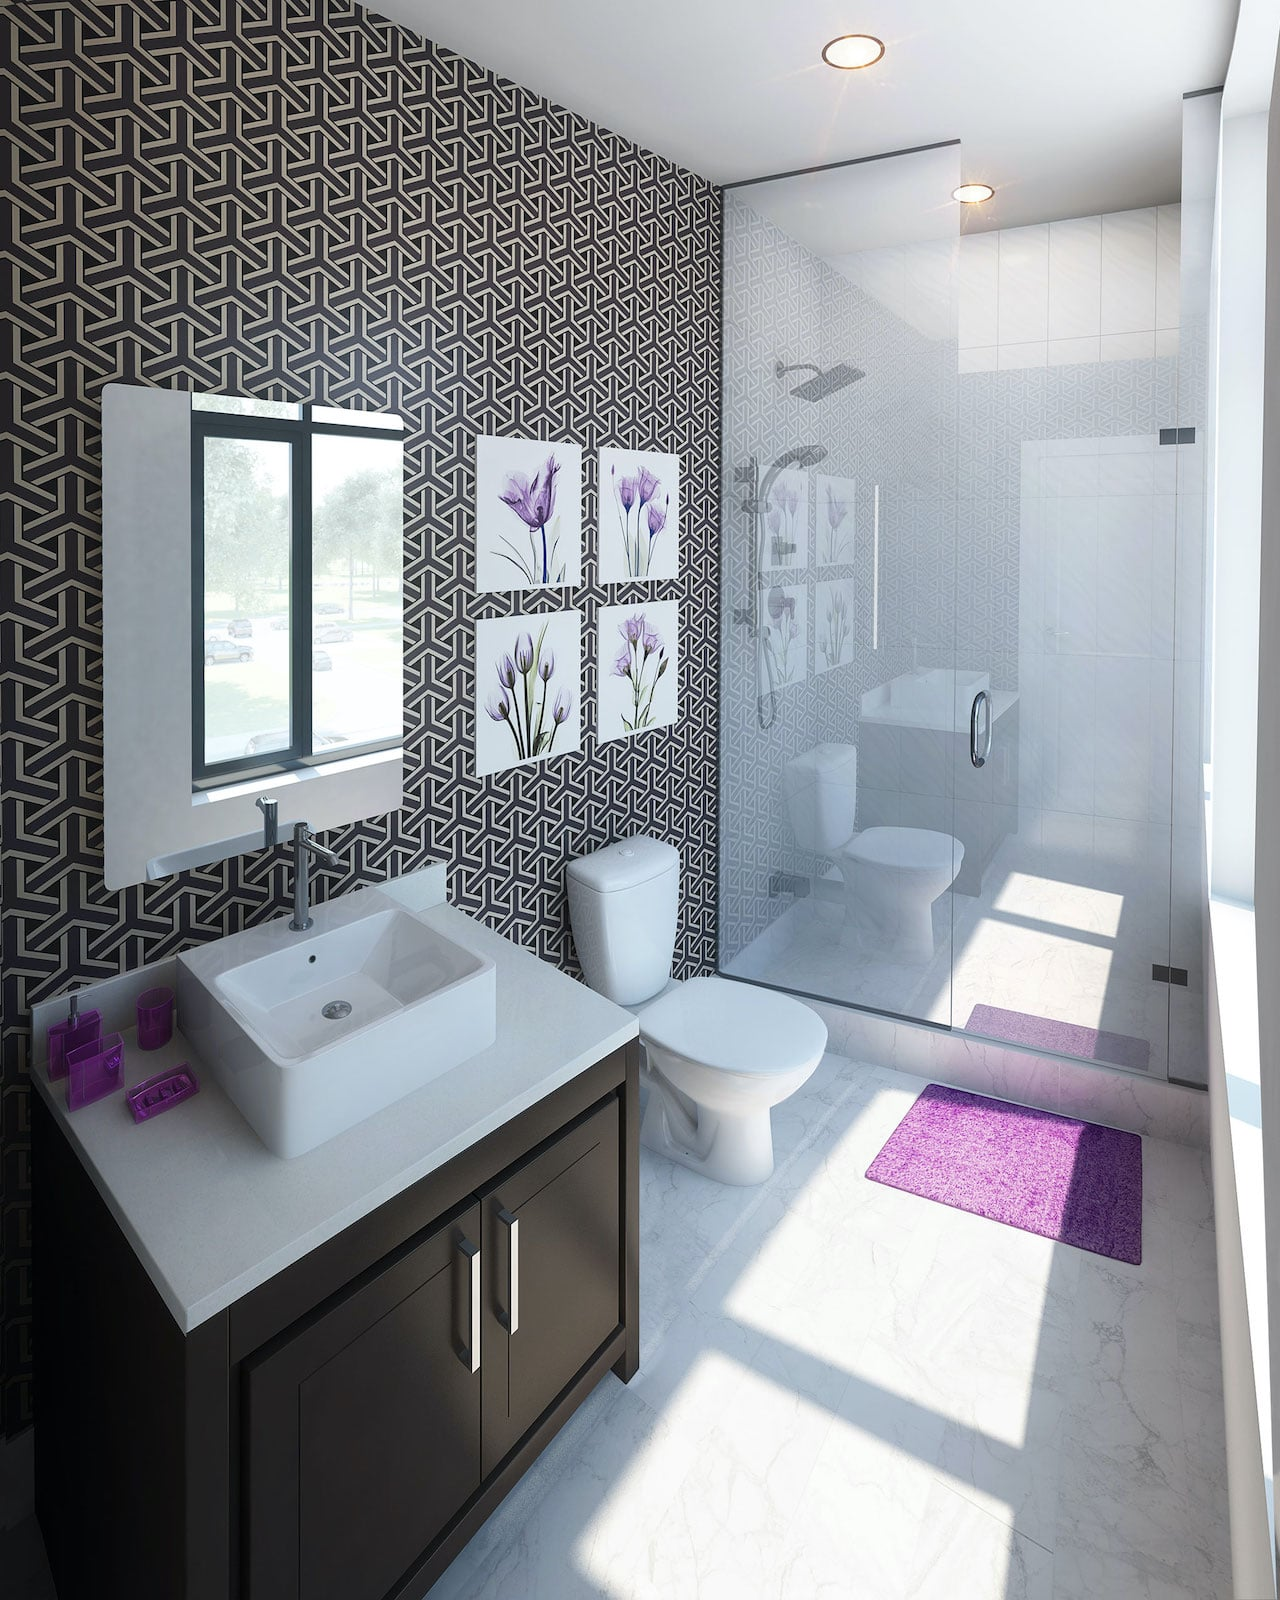 Rendering of 9560 Islington Urban Towns interior bathroom